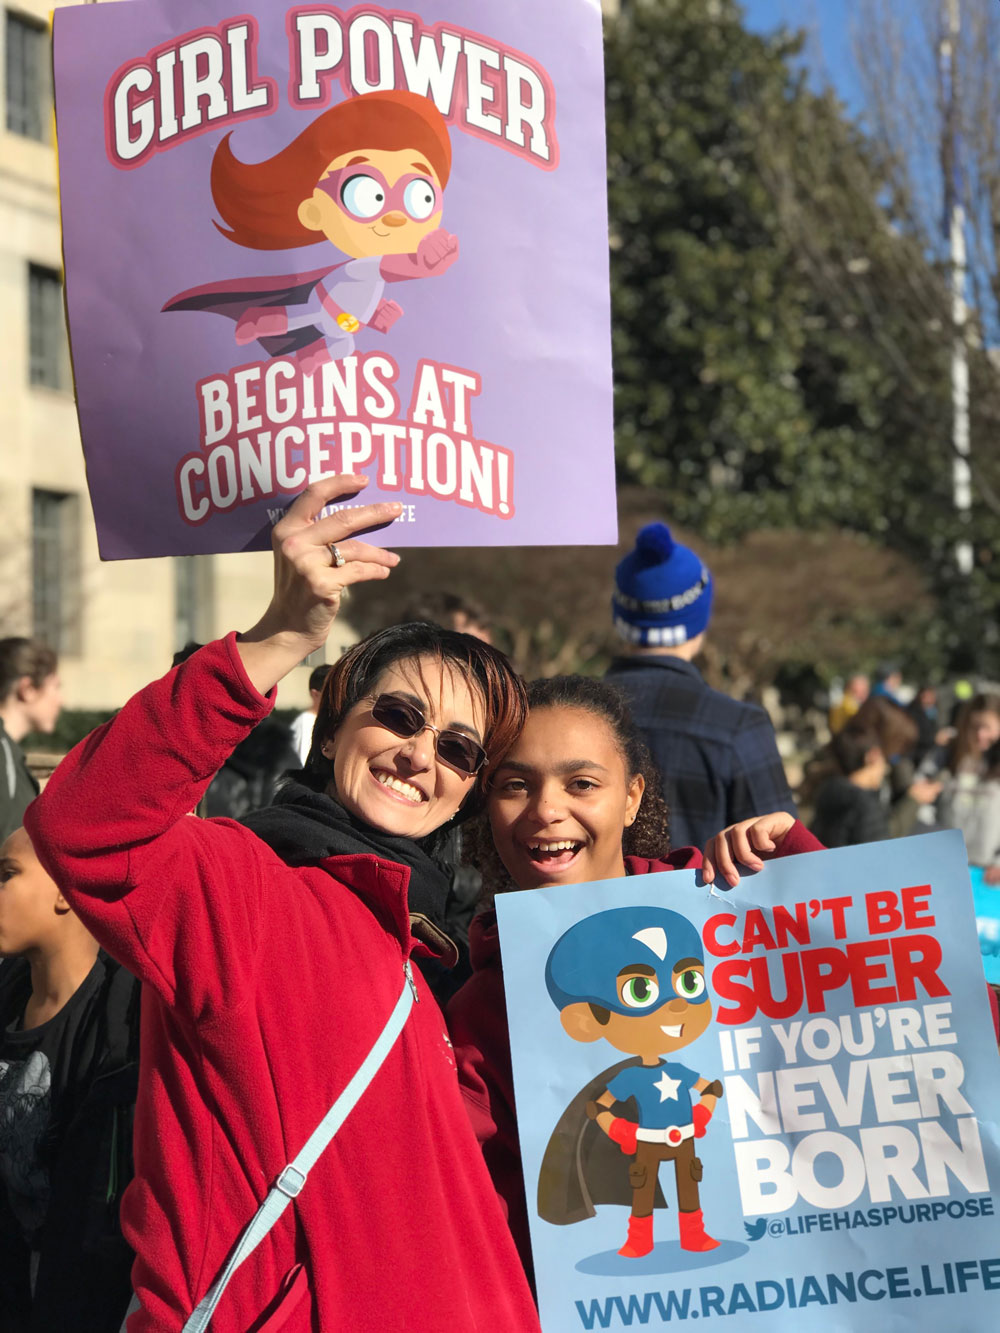 Former Marine Anita Serna and Radiance Bomberger show their prolife love!